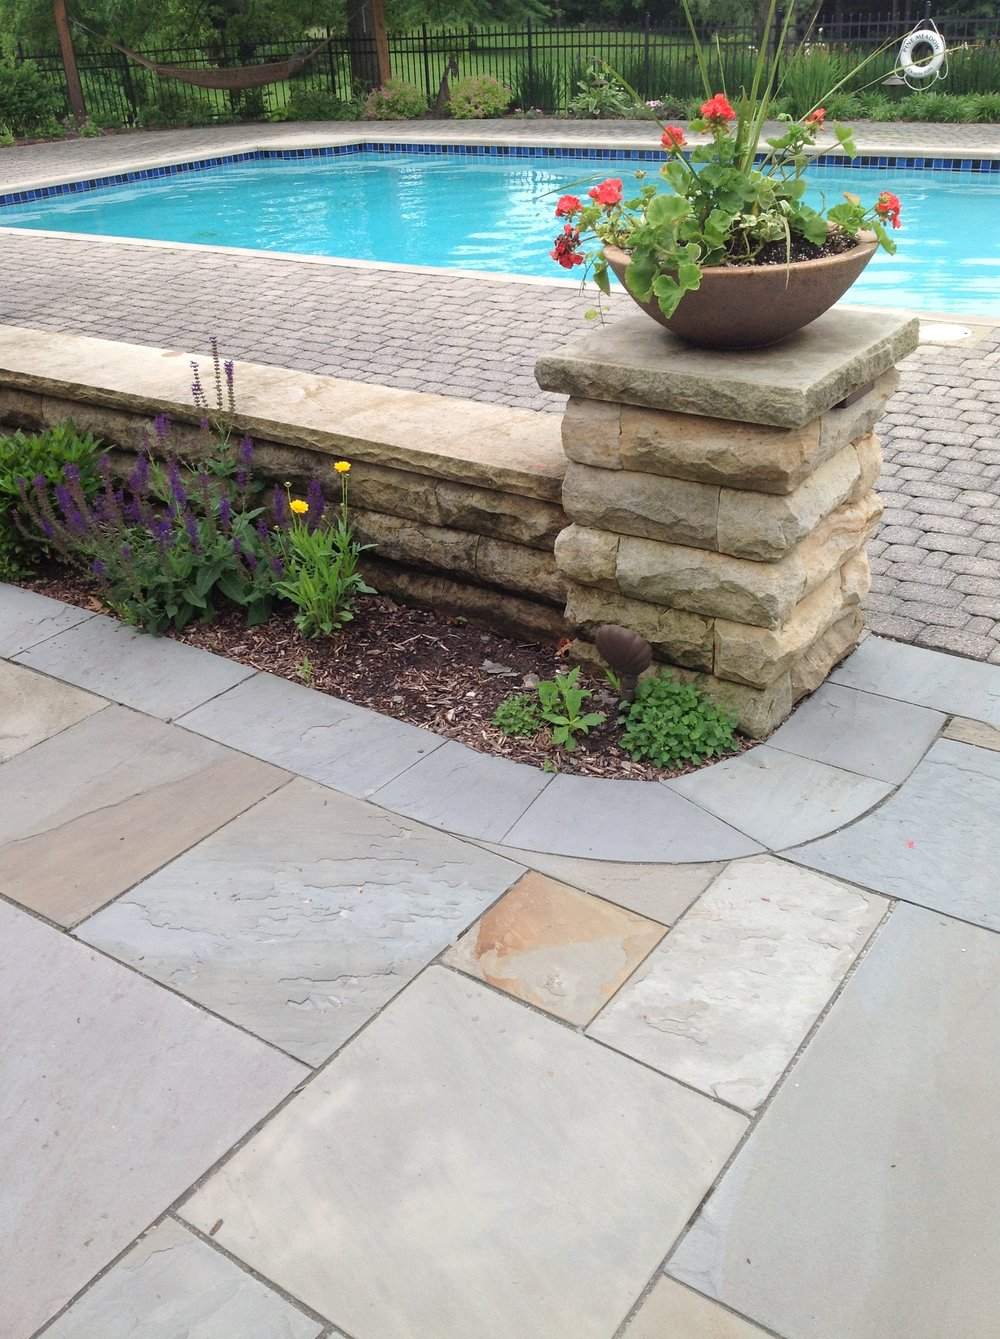 Unilock landscaping companies in Chagrin Falls, OH